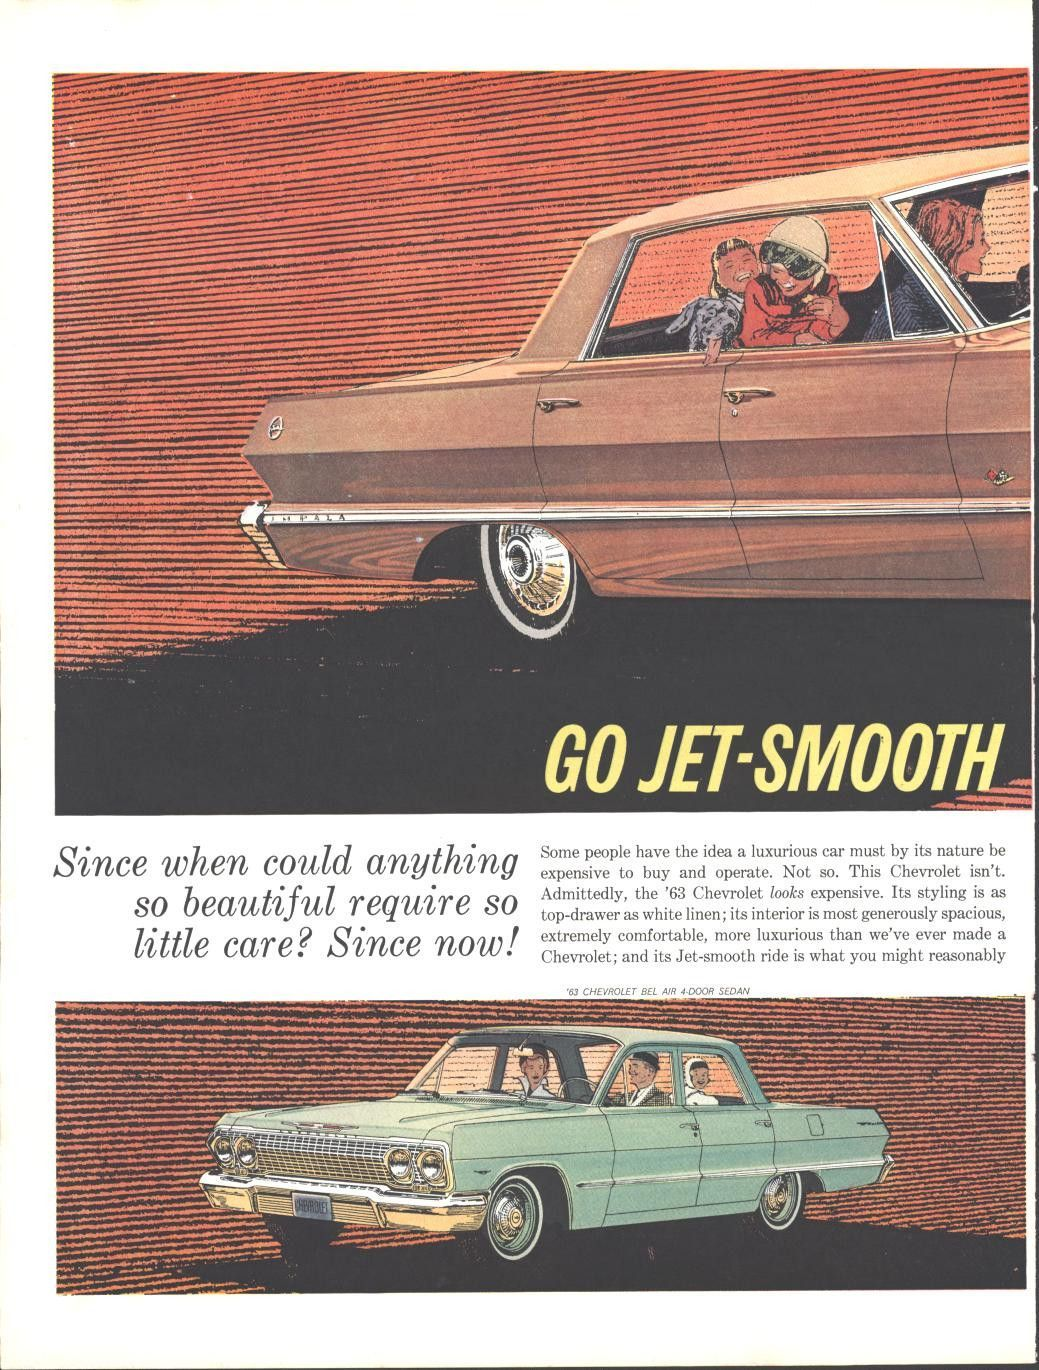 63 Chevrolet Impala Bel Air 4 Door (Double Page) LIFE October 5 1962 Unframed Page Size Approx.10.5 by 13.5 Double Framed Price Add: $84.98 Double Framed Size Approx. 26 by 20                                                                                                                                                                                 More